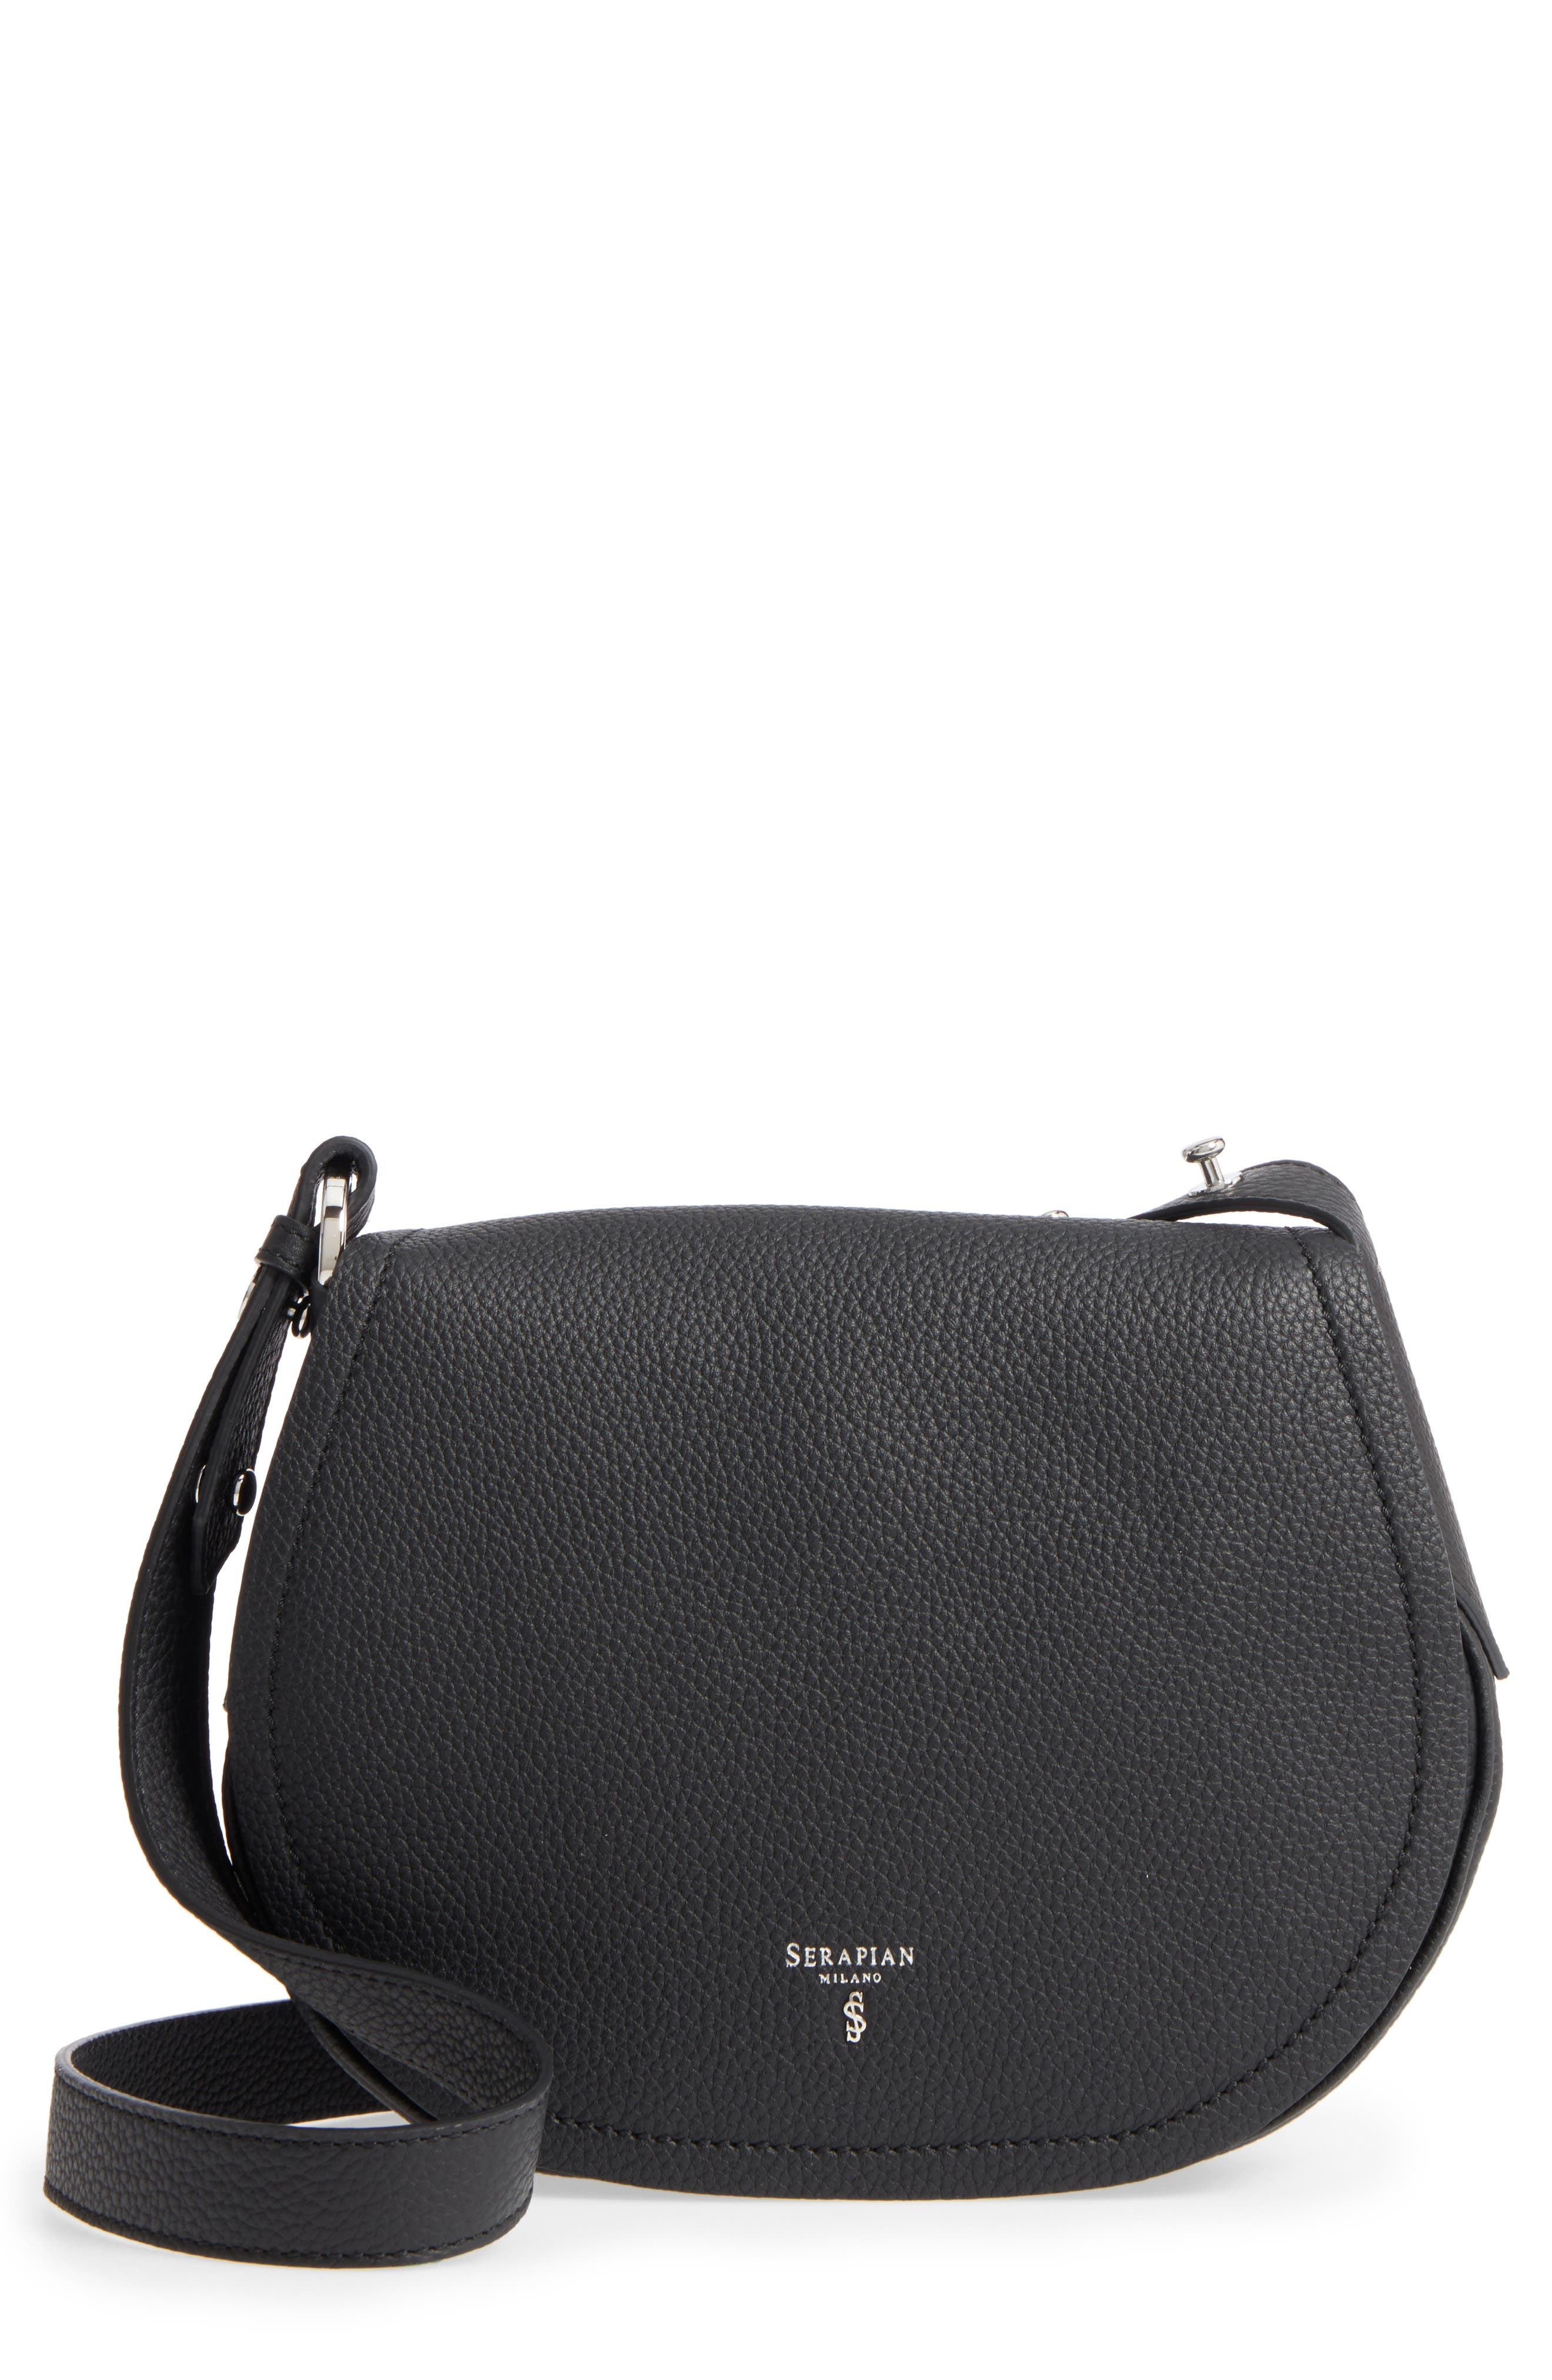 Main Image - Serapian Milano Mini Valeria Cachemire Leather Crossbody Bag